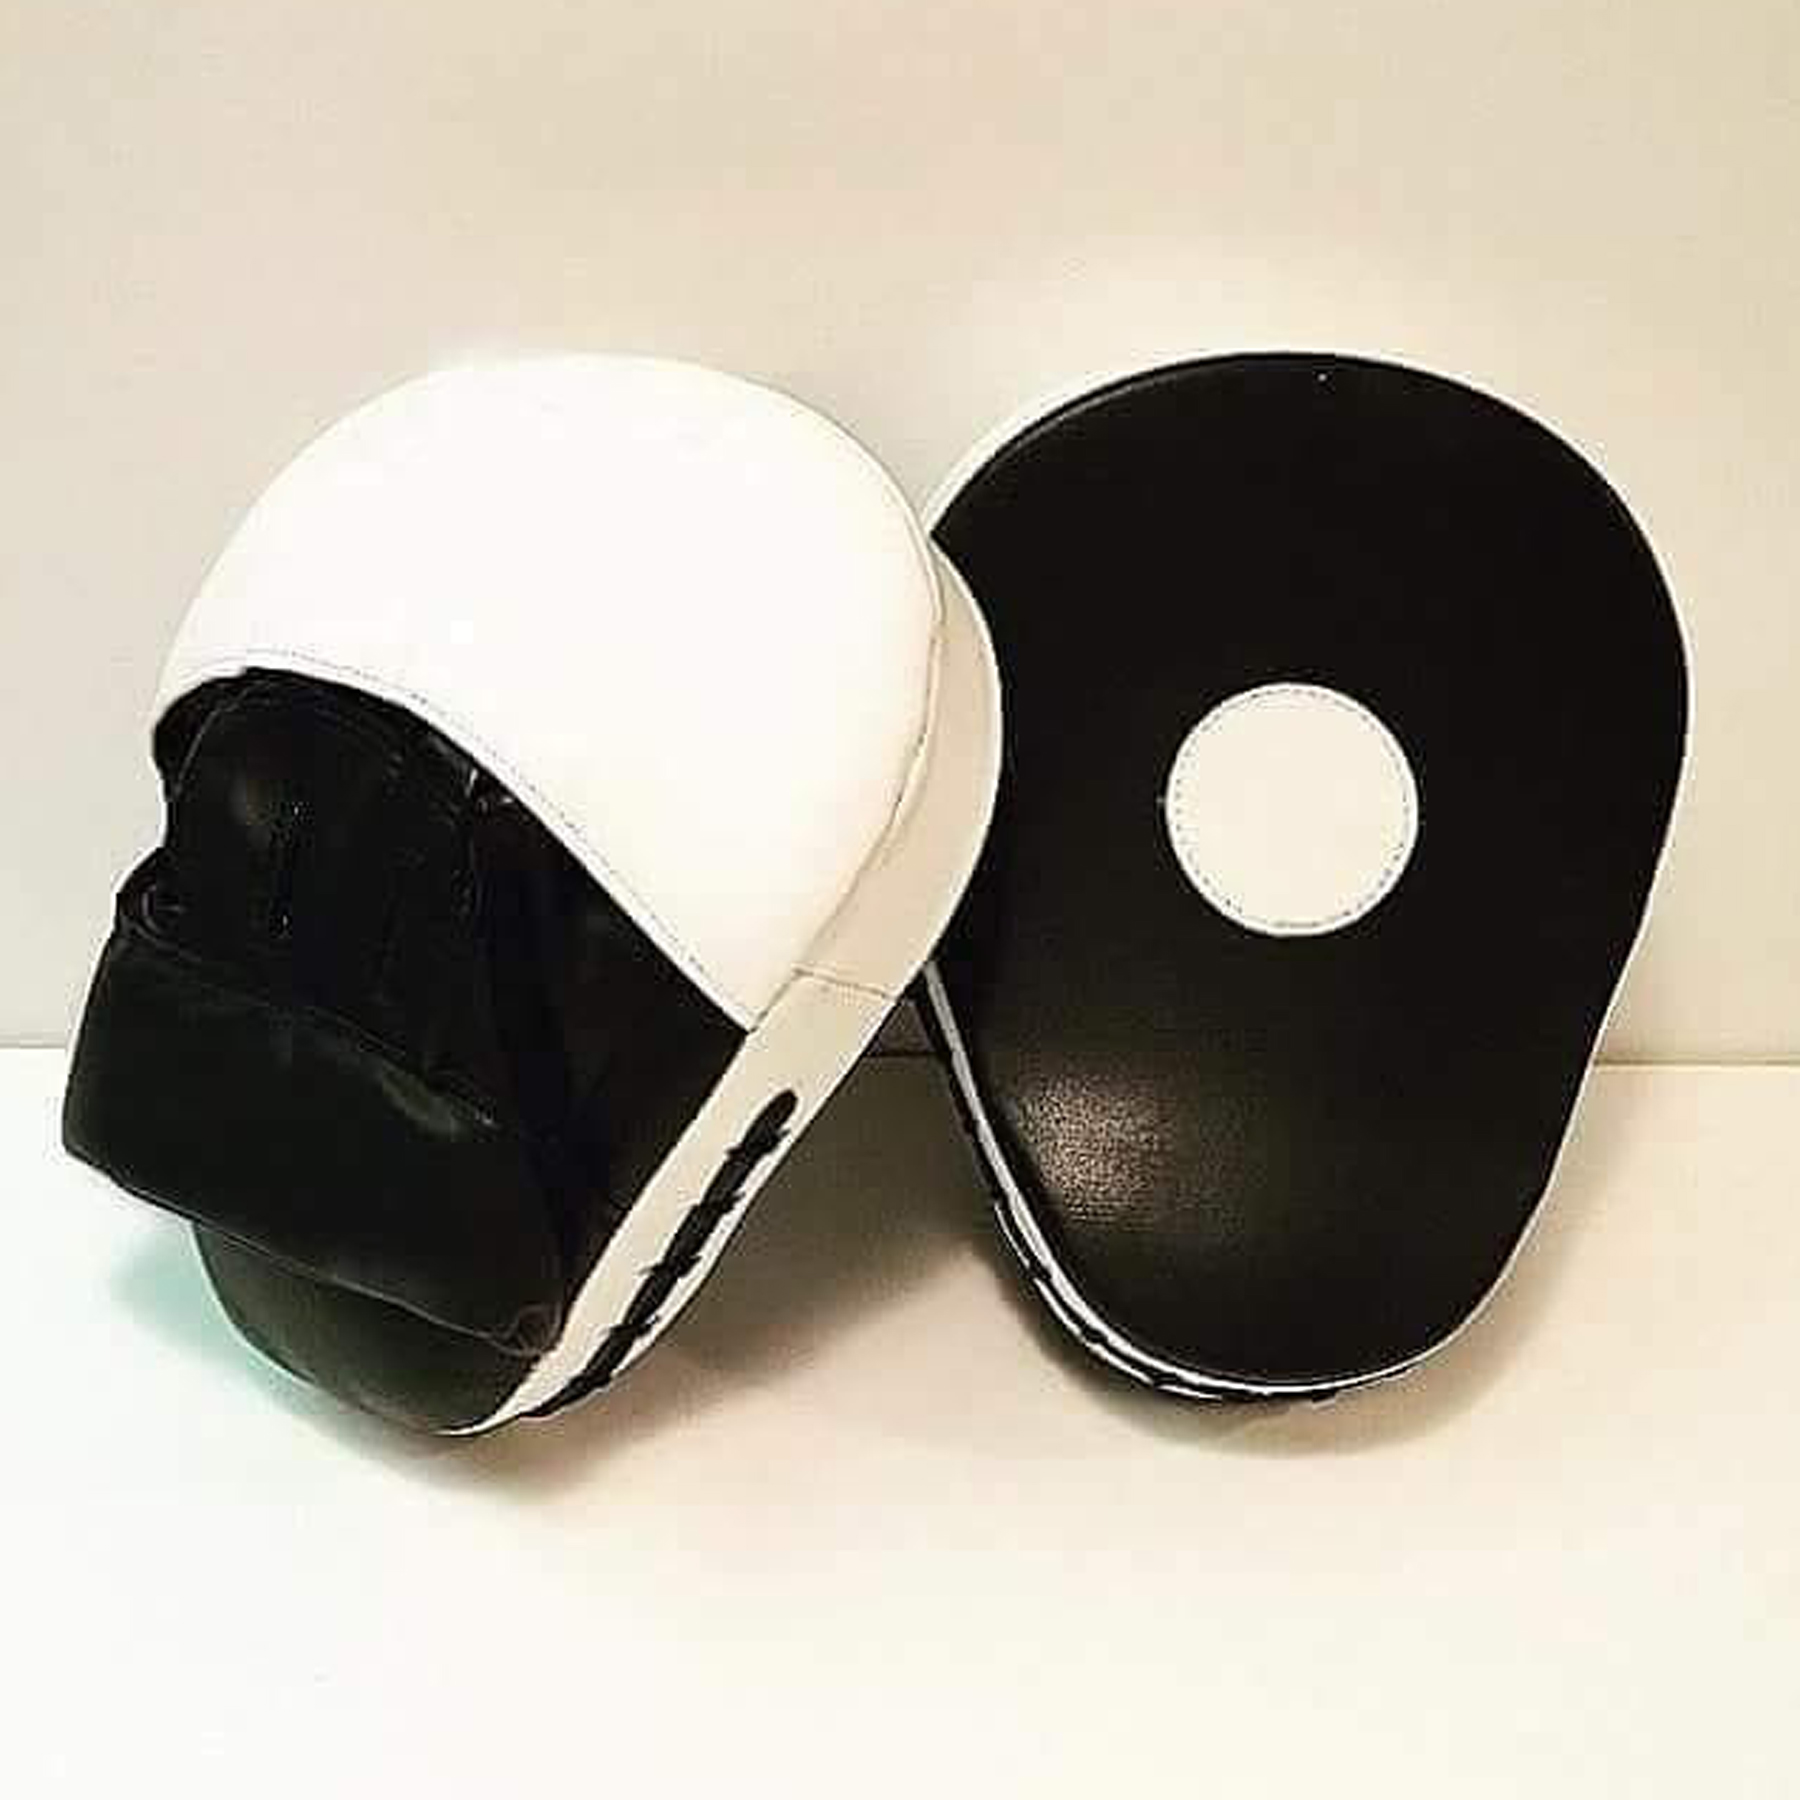 Large Kick Boxing Strike Curved Thai Pad MMA Focus Muay Thai Punch Shield Mitts